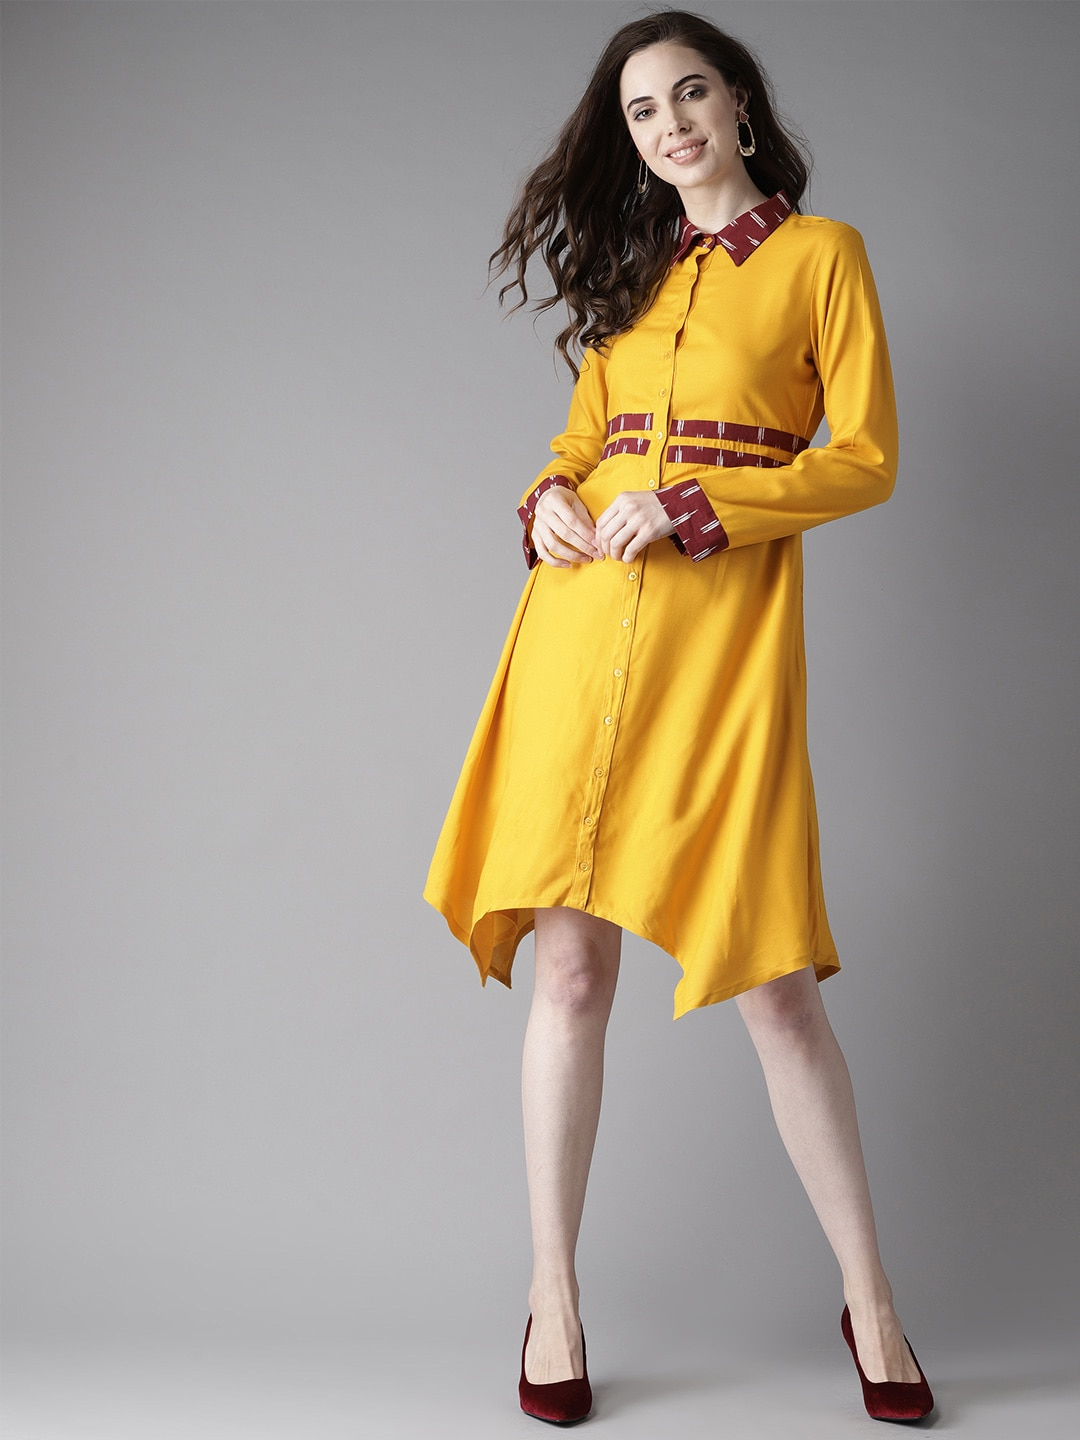 3884f7becbb Yellow Dresses - Buy Yellow Dresses online in India